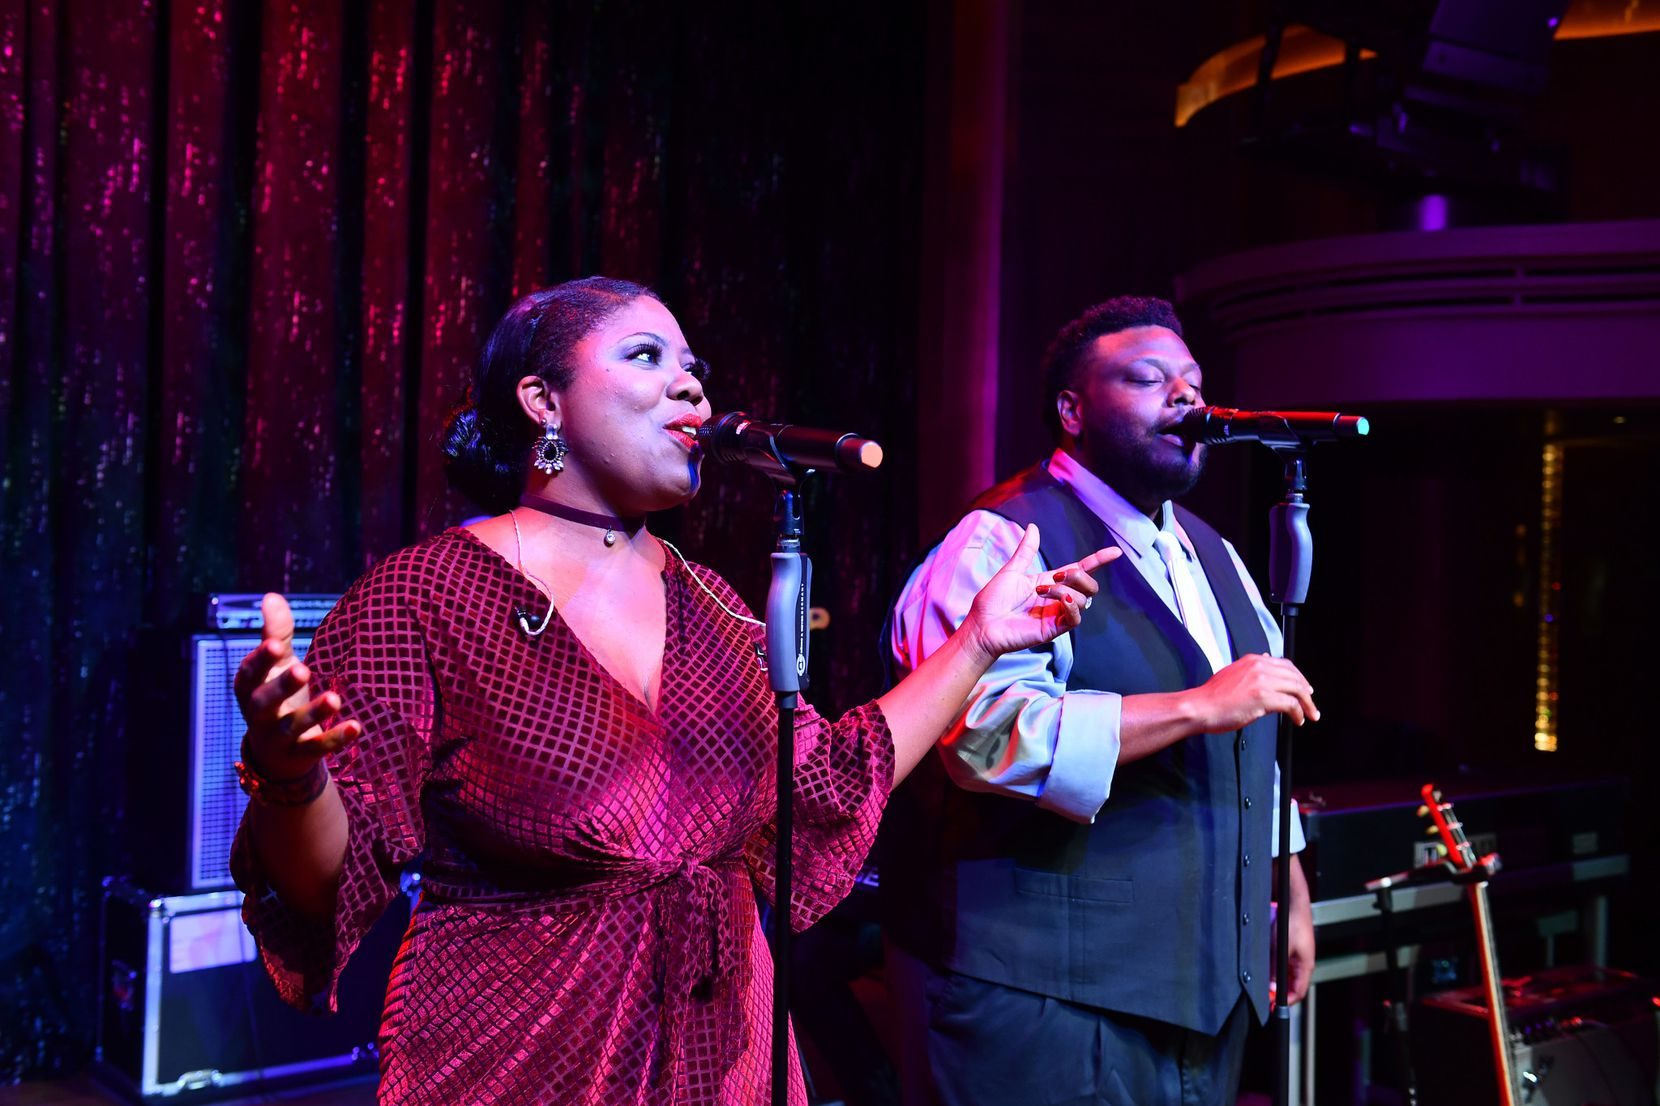 Musicians perform in B.B. King's Blues Club, which operates on five Holland America Line vessels.